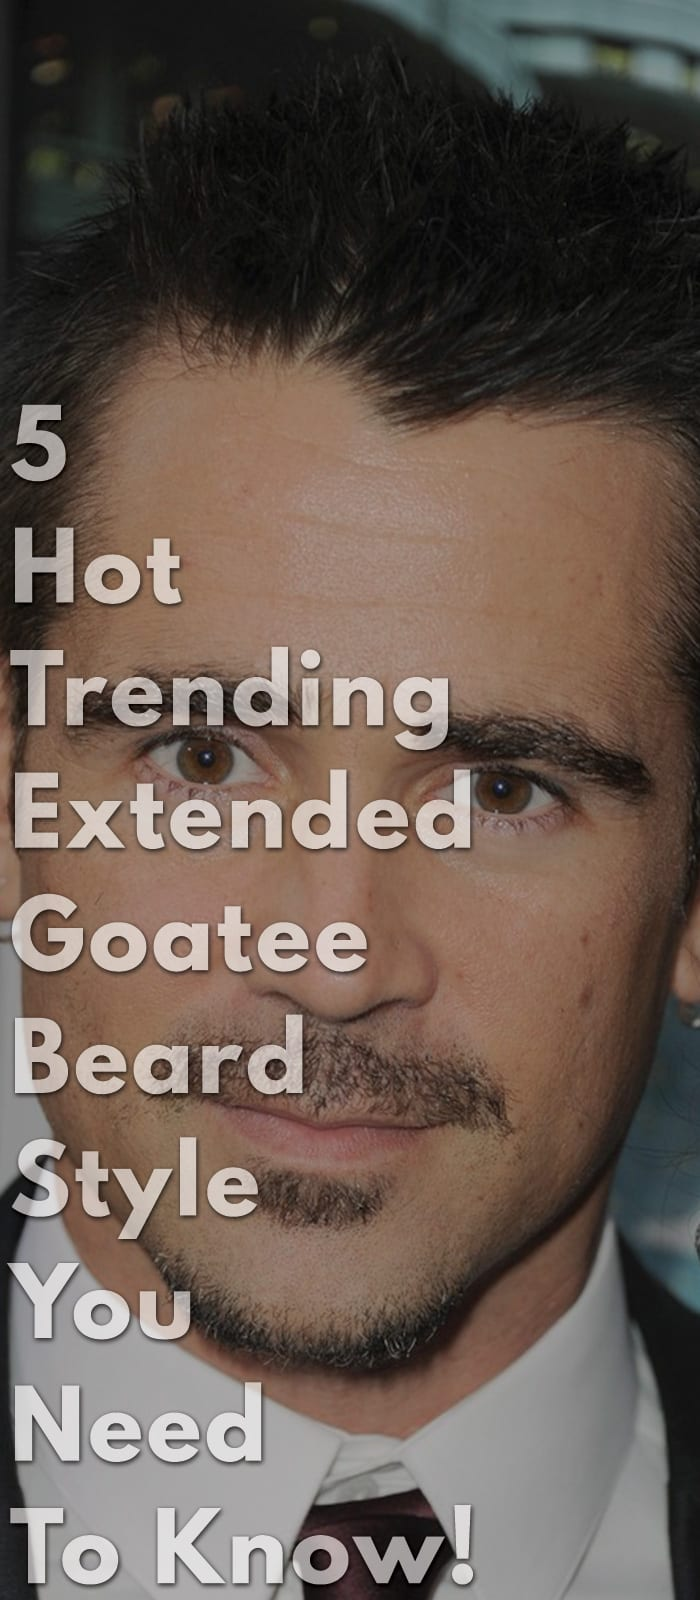 5-Hot-Trending-Extended-Goatee-Beard-Style-You-Need-To-Know!.